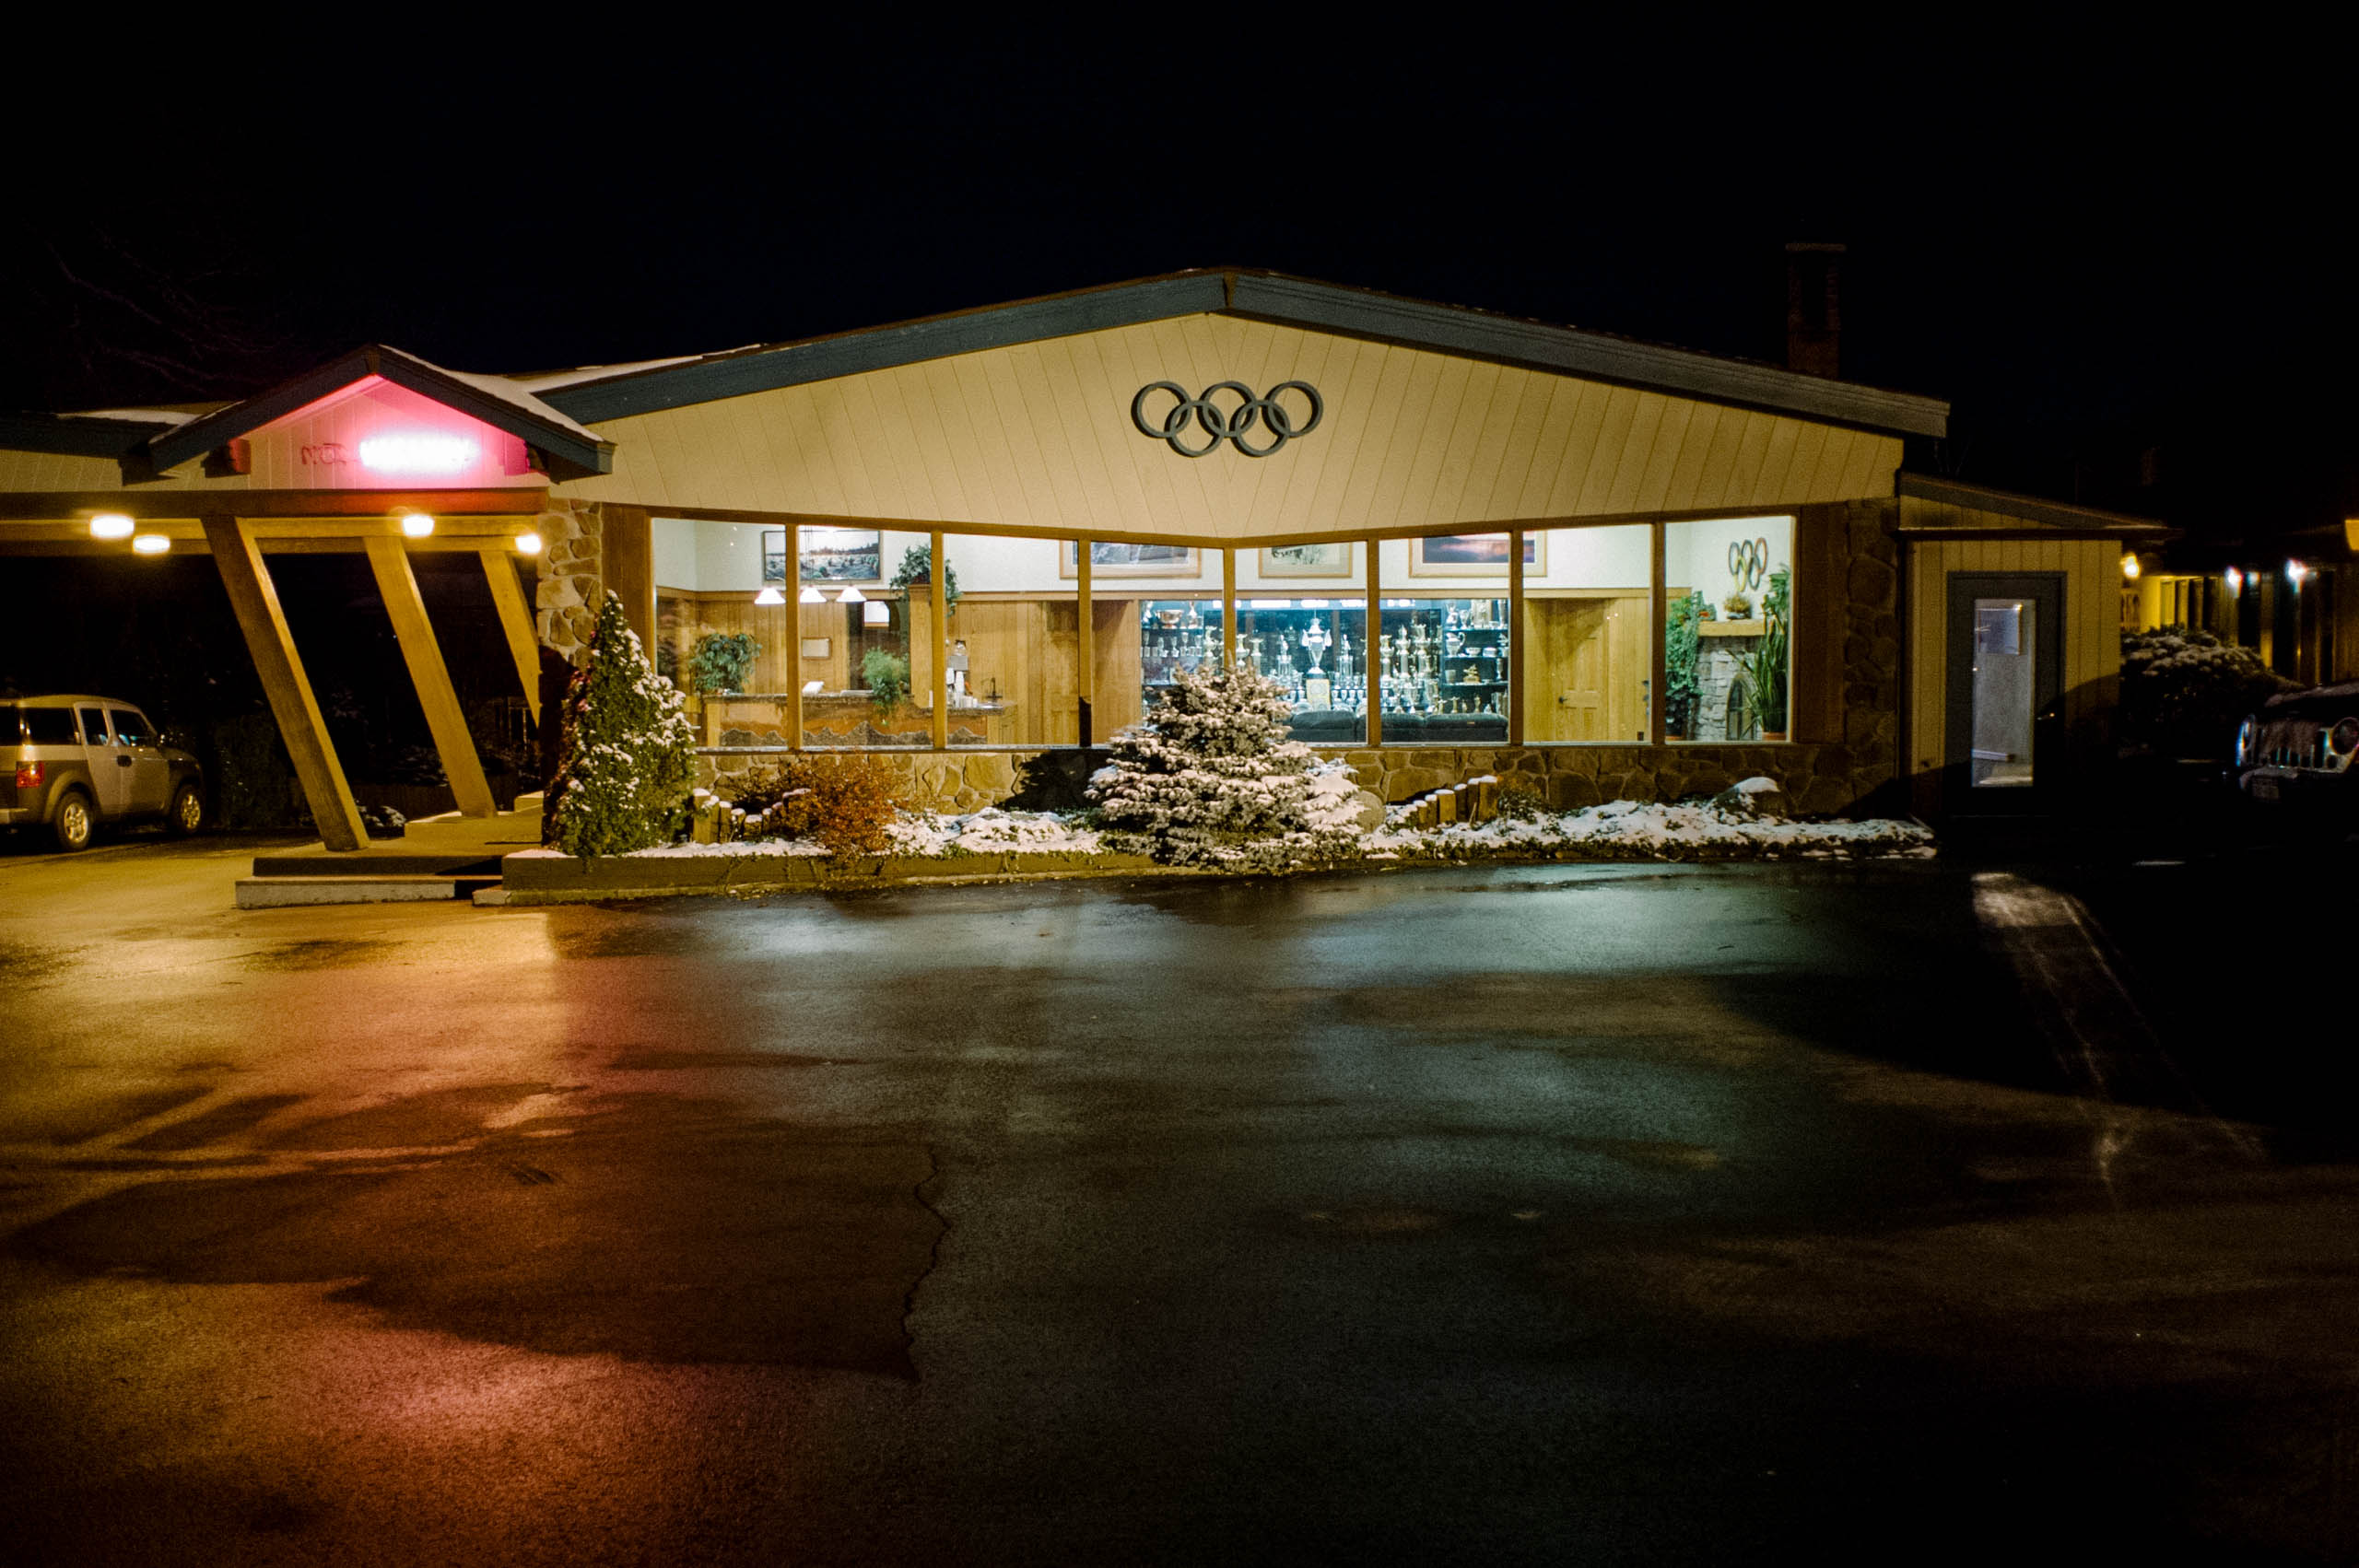 The Art Devlin's Olympic Motor Inn in Lake Placid, N.Y., host of the 1932 and 1980 Winter Olympics, photographed in November 2008. Devlin was a ski jumper and later started the motel business in the Adirondacks.